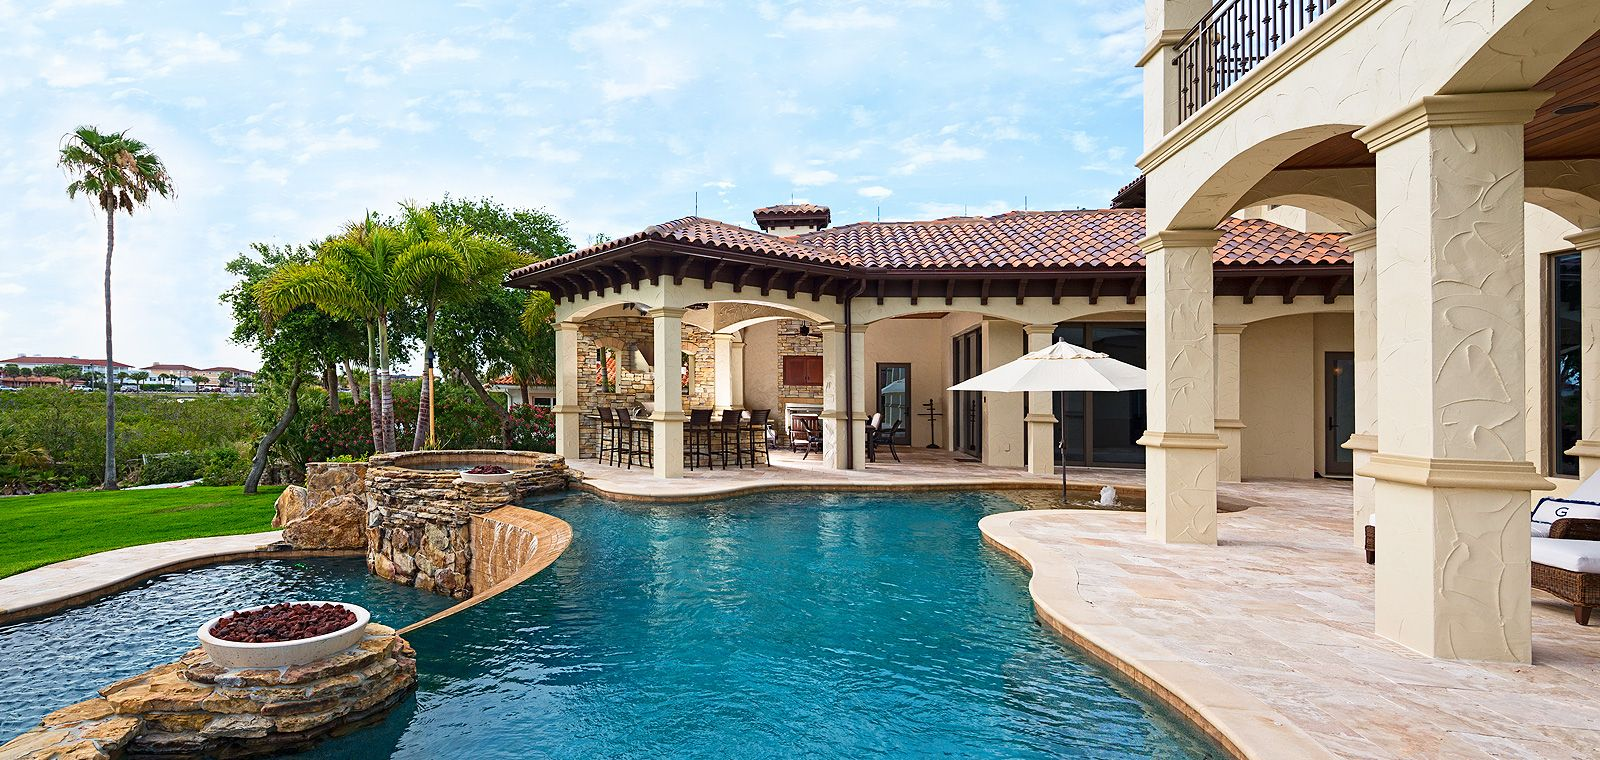 Luxury Homes For Sale In Orlando Fl Orlando Vacation